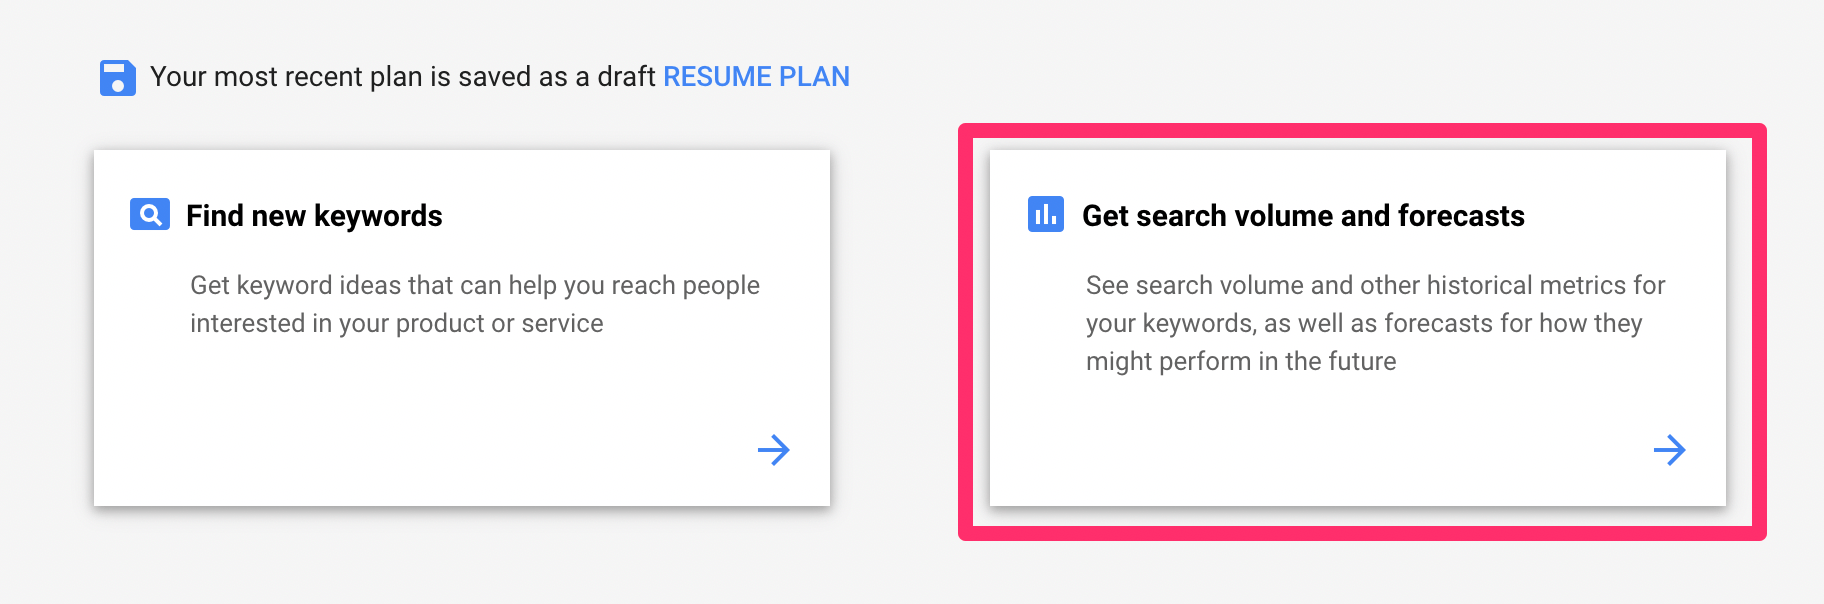 Search Volume Forecast